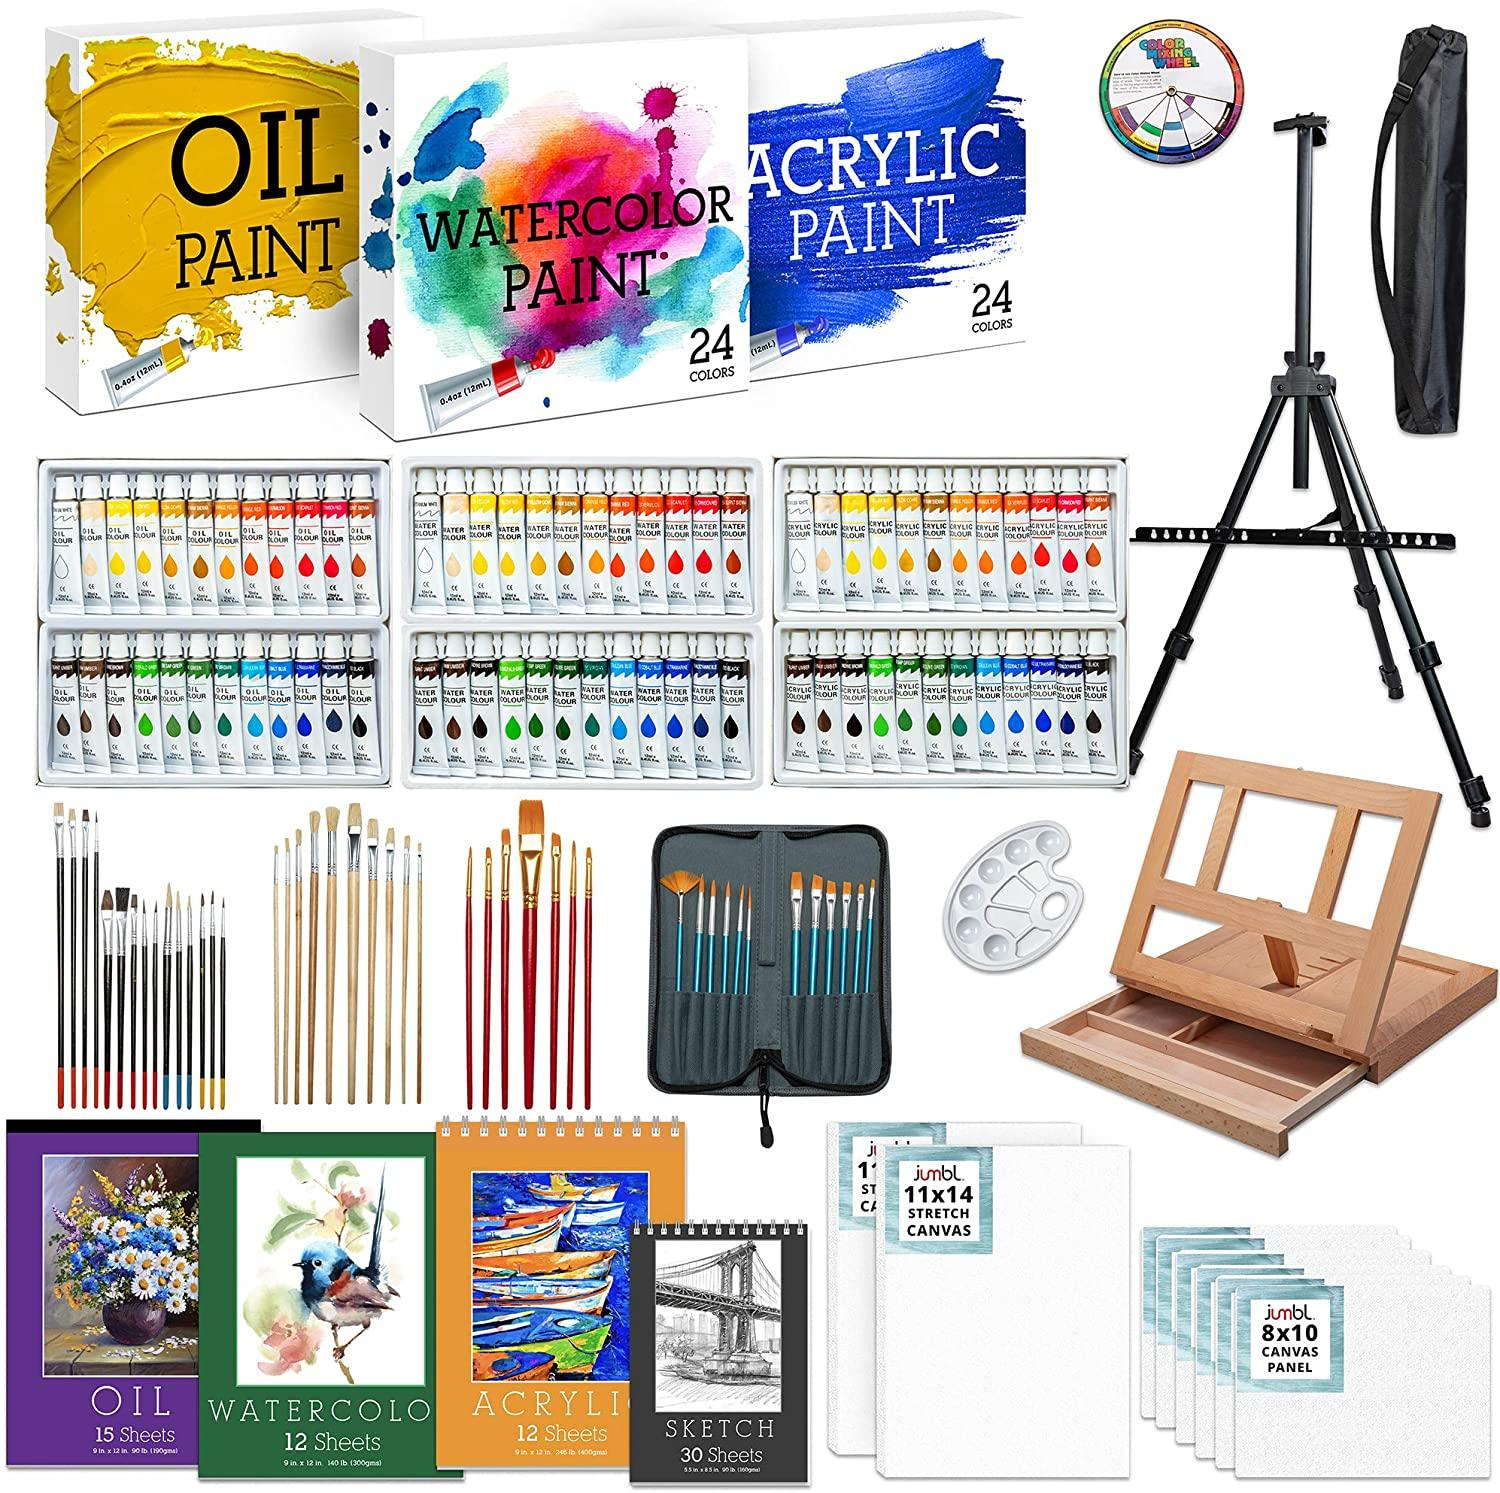 Painting Kit, $99 @amazon.com